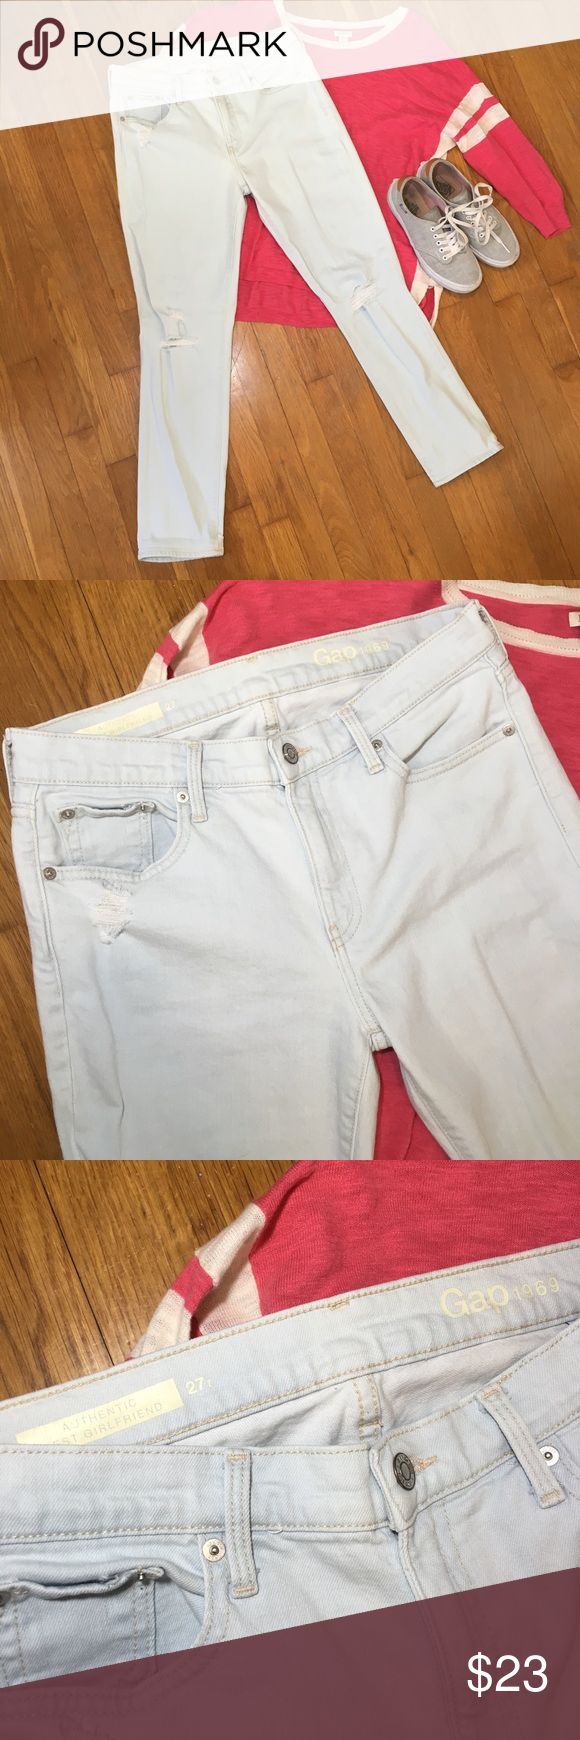 GAP distressed girlfriend jeans light wash size 27 GAP distressed girlfriend jeans light wash. Size 27/4. Excellent condition, there's rips in both knees and distressing on both back pockets. Narrow leg, halfway between straight and skinny. Dimensions coming soon GAP Jeans Skinny